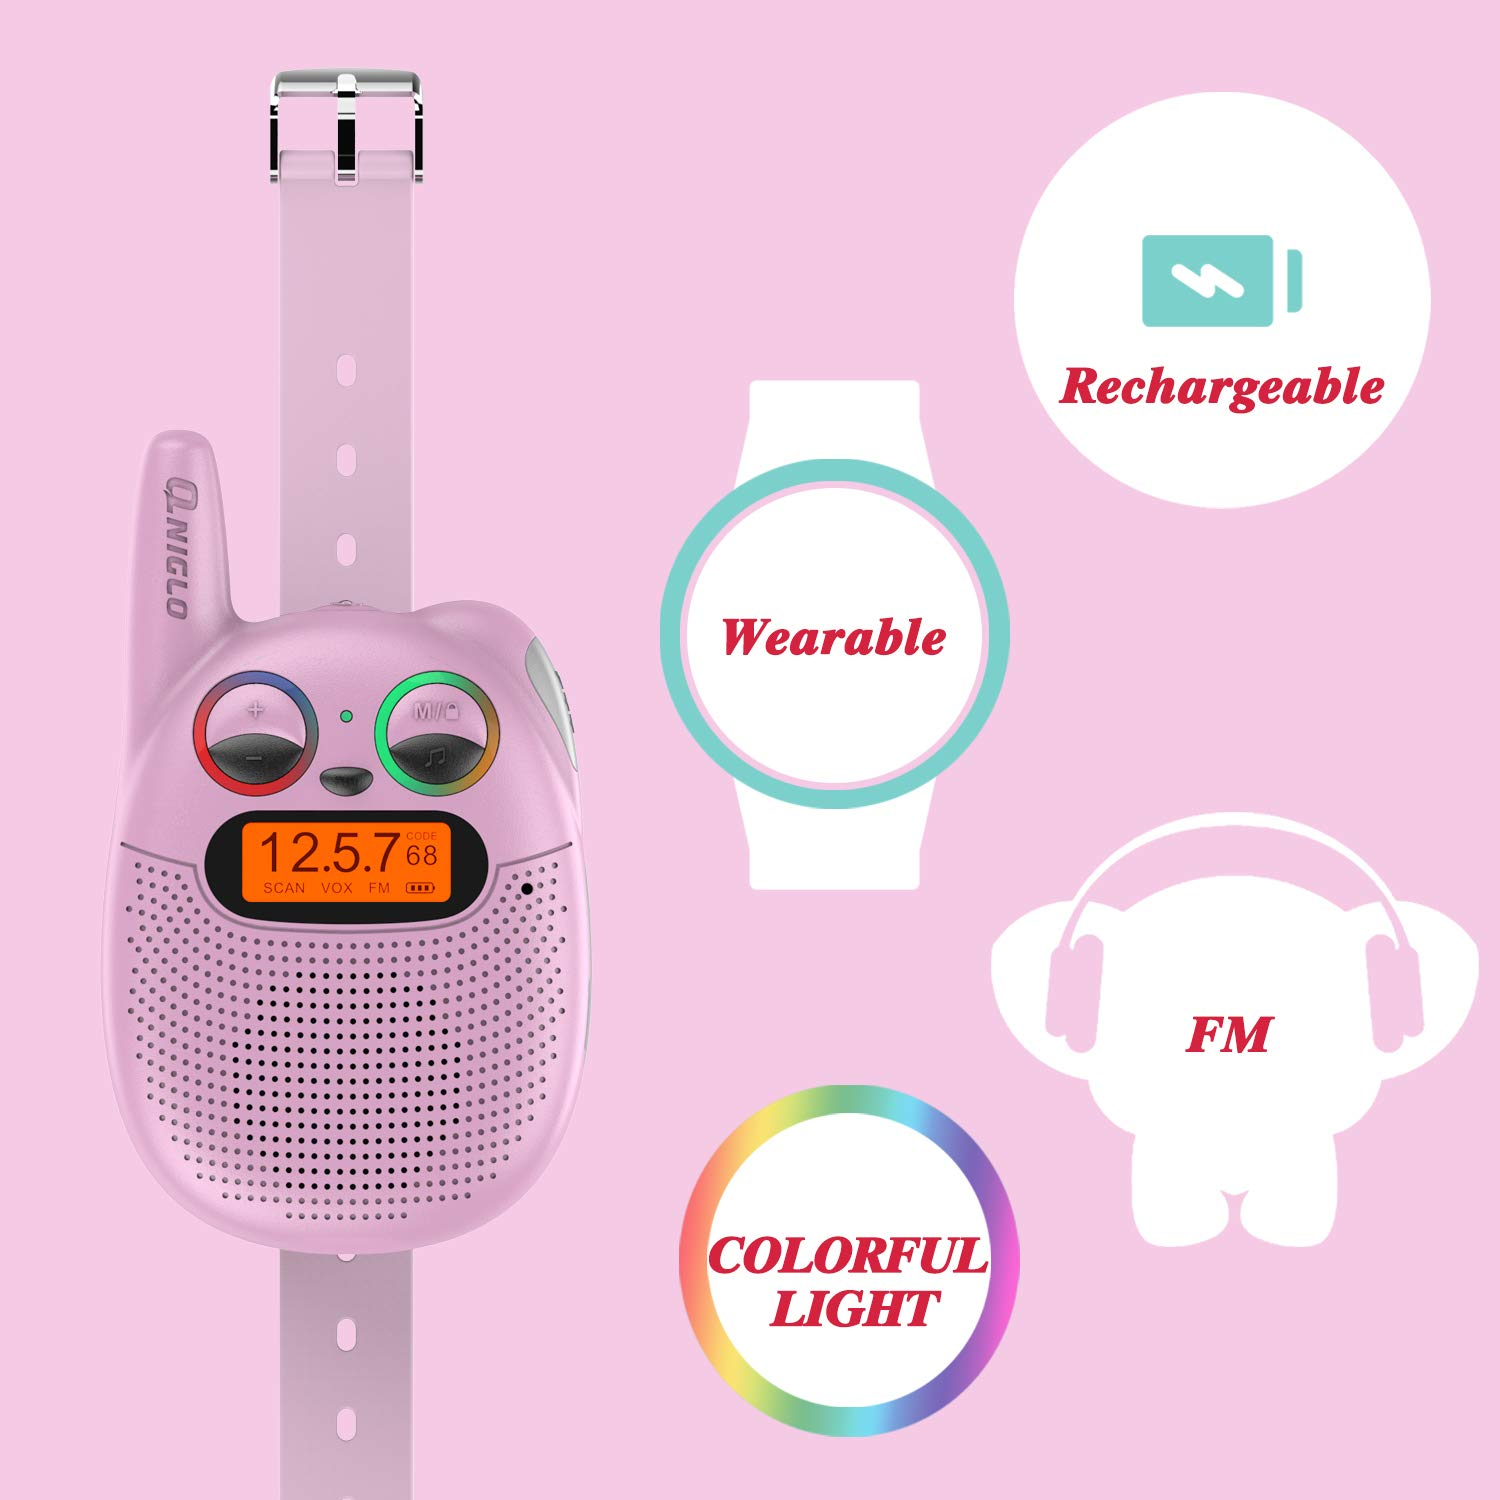 Qniglo FRS Walkie Talkies with FM, Wearable & Rechargeable Walkie Talkies for Kids, up to 2 Miles Kids Walkie Talkies for Bicycle, Hiking, Camping, Running (2 Packs, Pink) by Qniglo (Image #5)